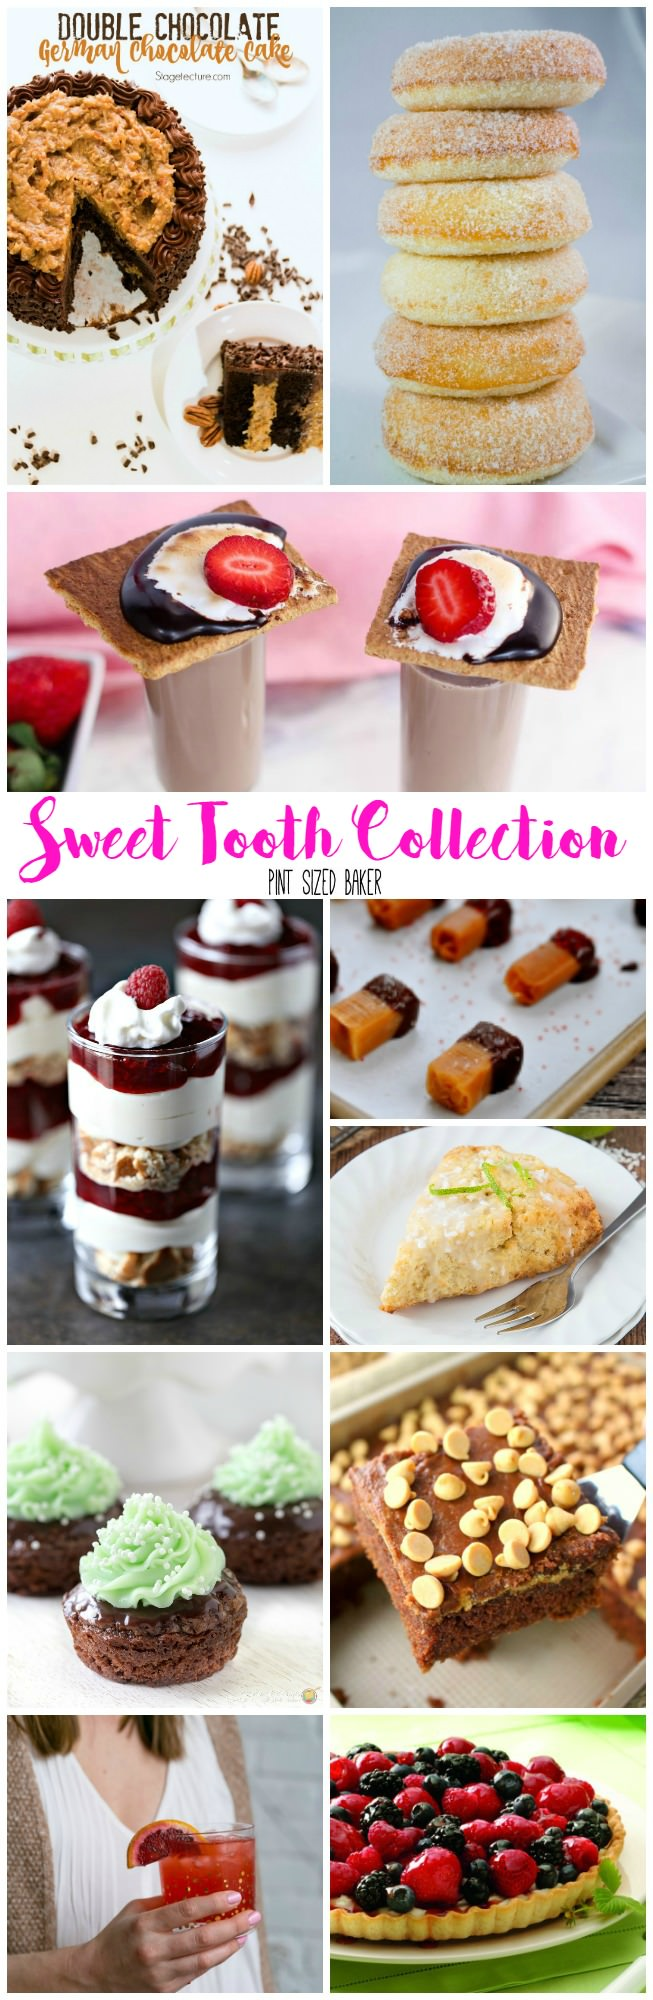 A great Sweet Tooth Collection! 10 recipes for amazing treats for breakfast, snack time, and dessert!